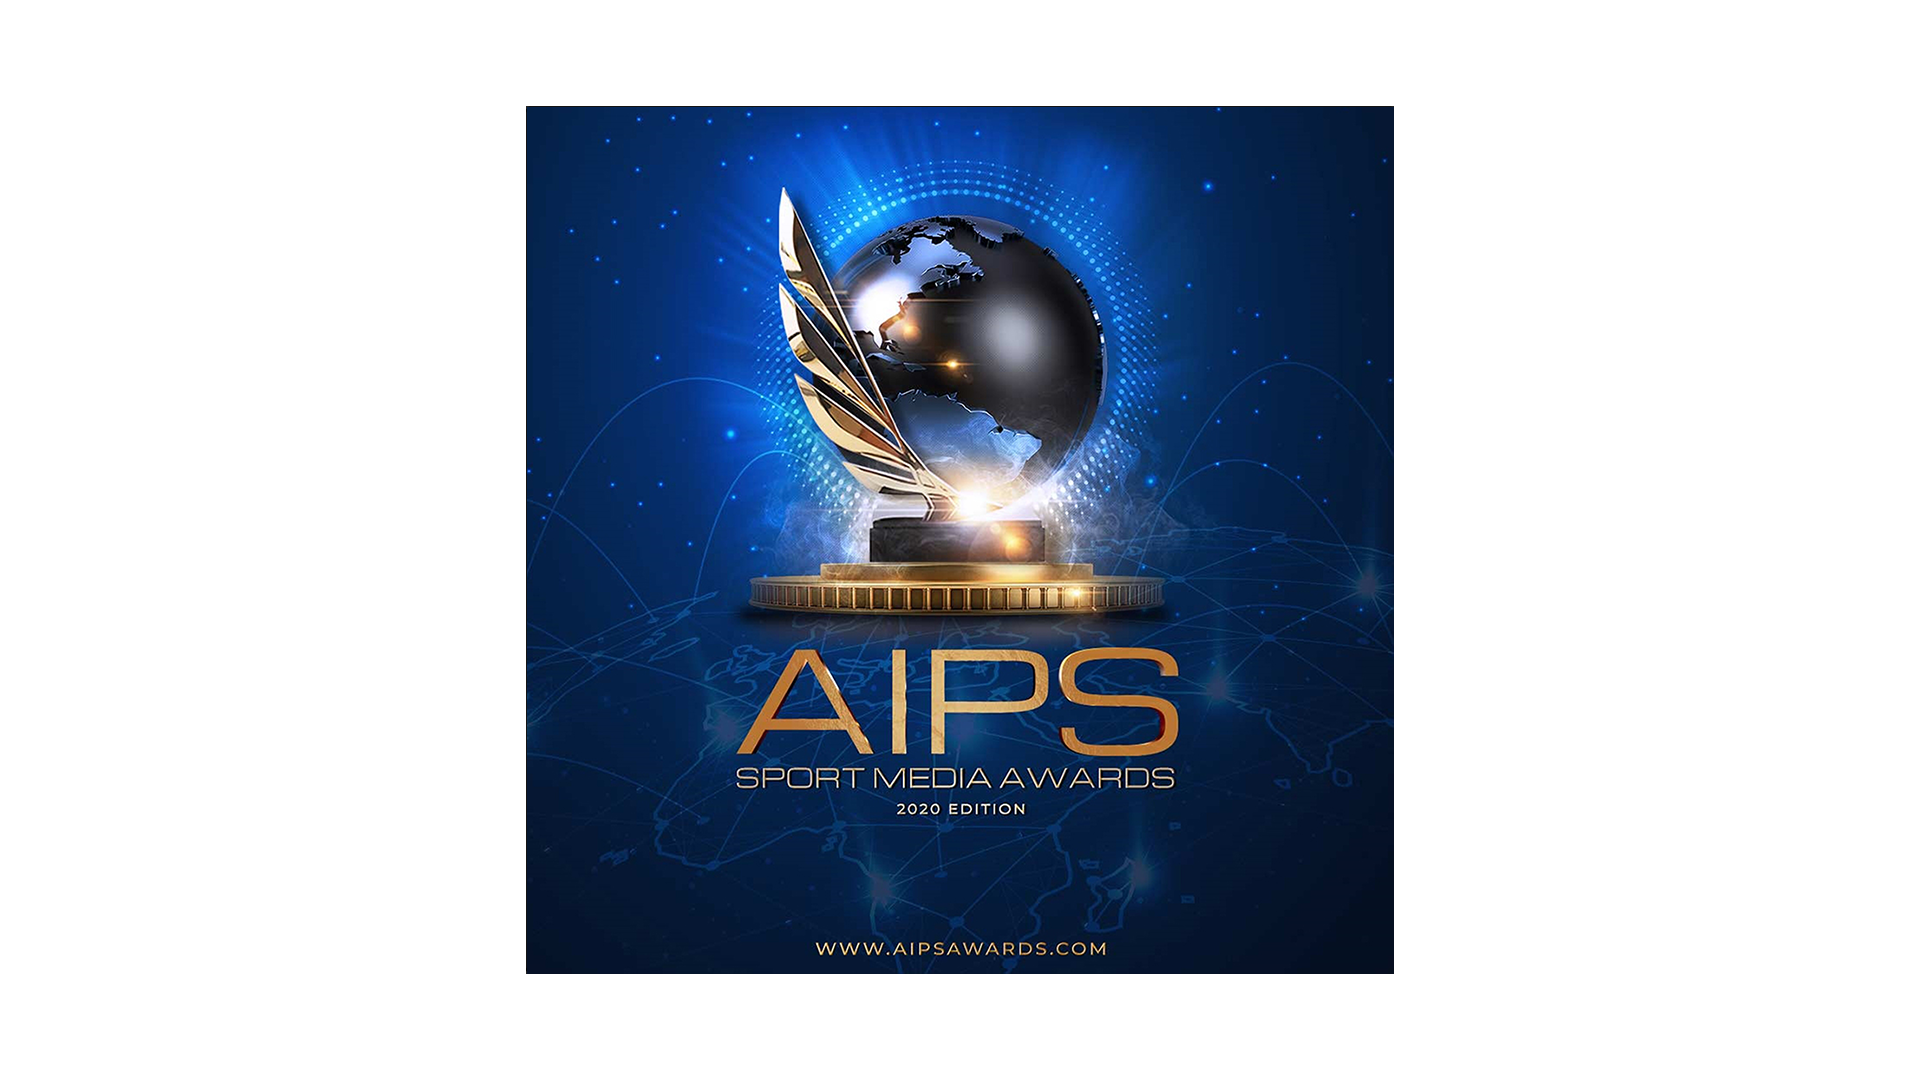 AIPS Awards